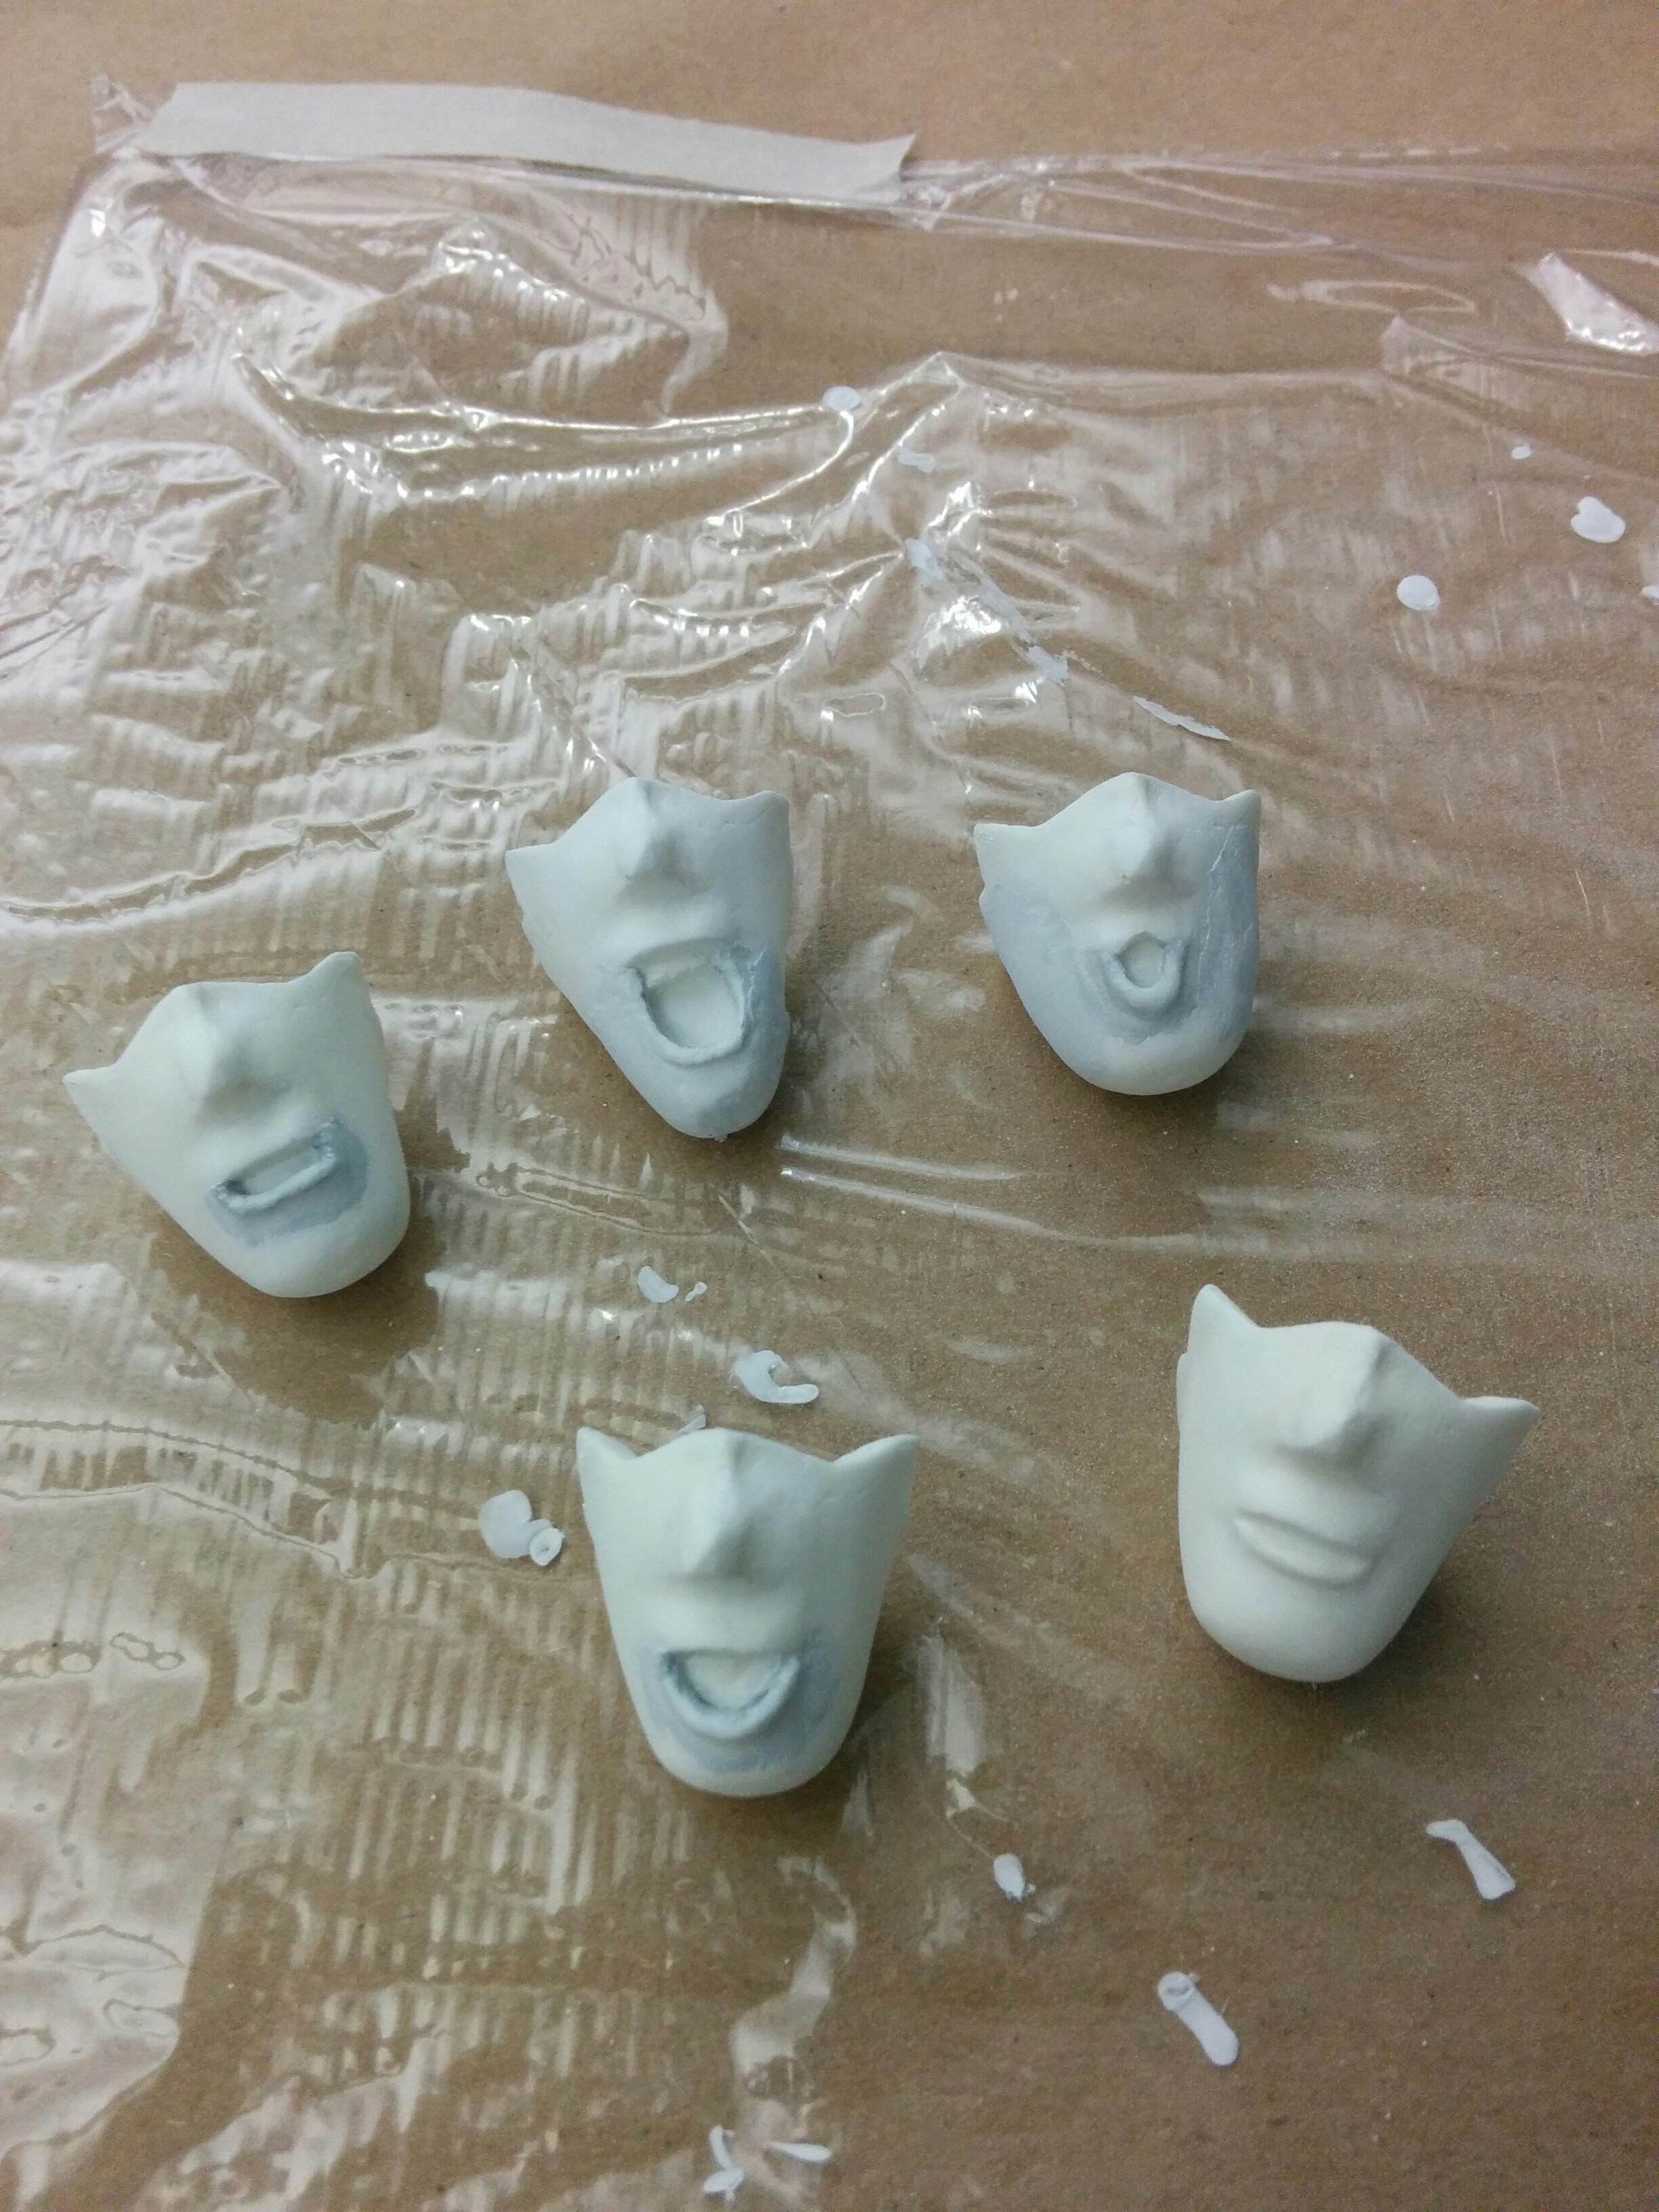 Replacement mouth shapes primed and sanded, prepped for painting.